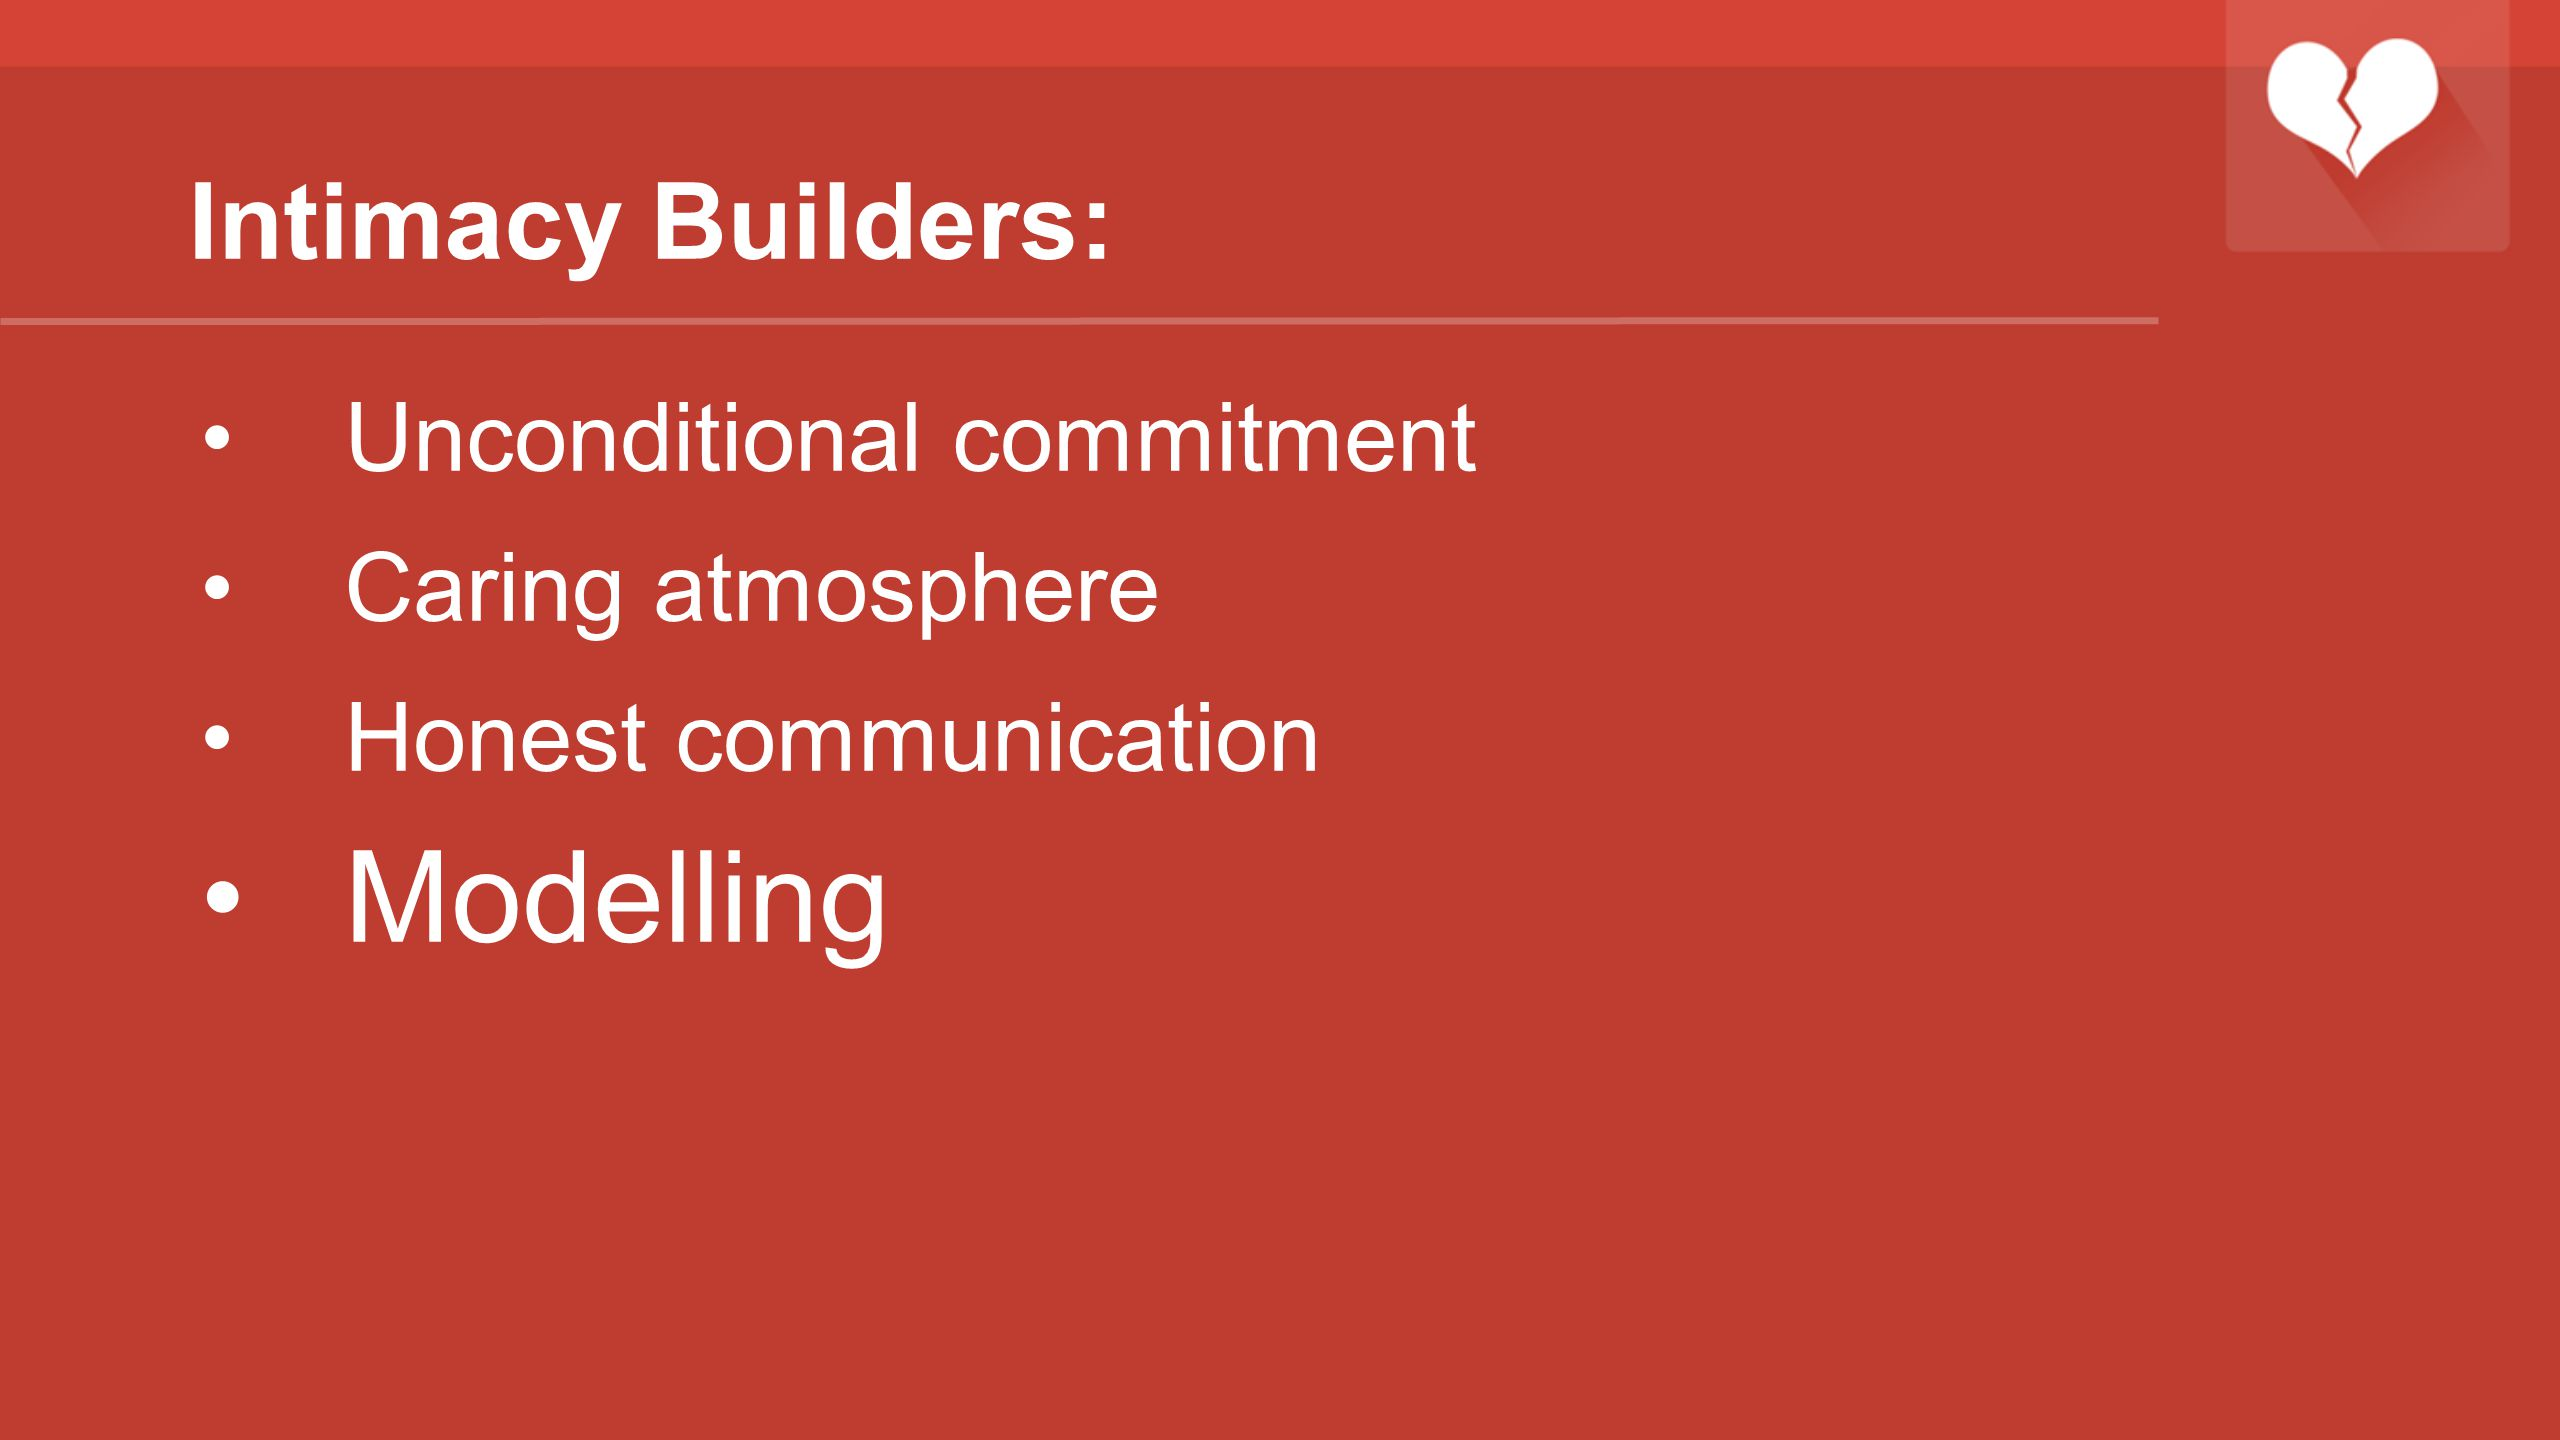 Modelling Intimacy Builders: Unconditional commitment